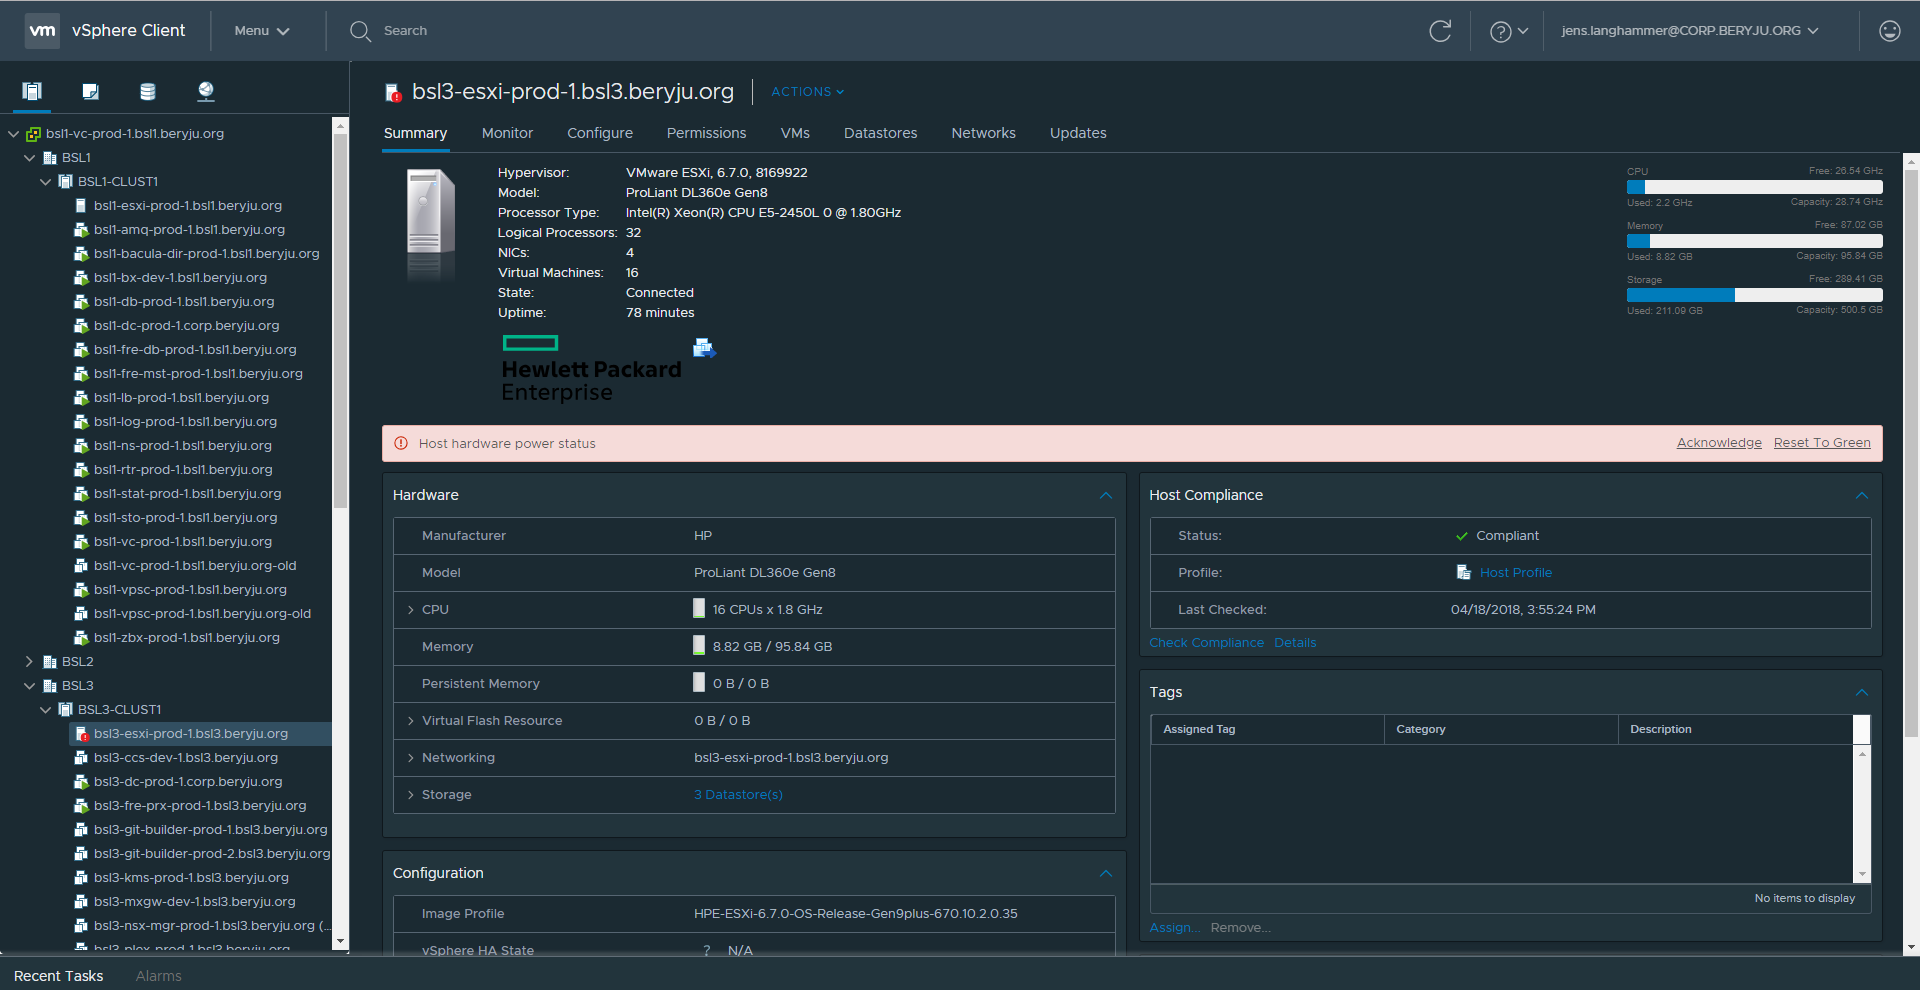 Dark Theme for vCenter's HTML5 Client : sysadmin